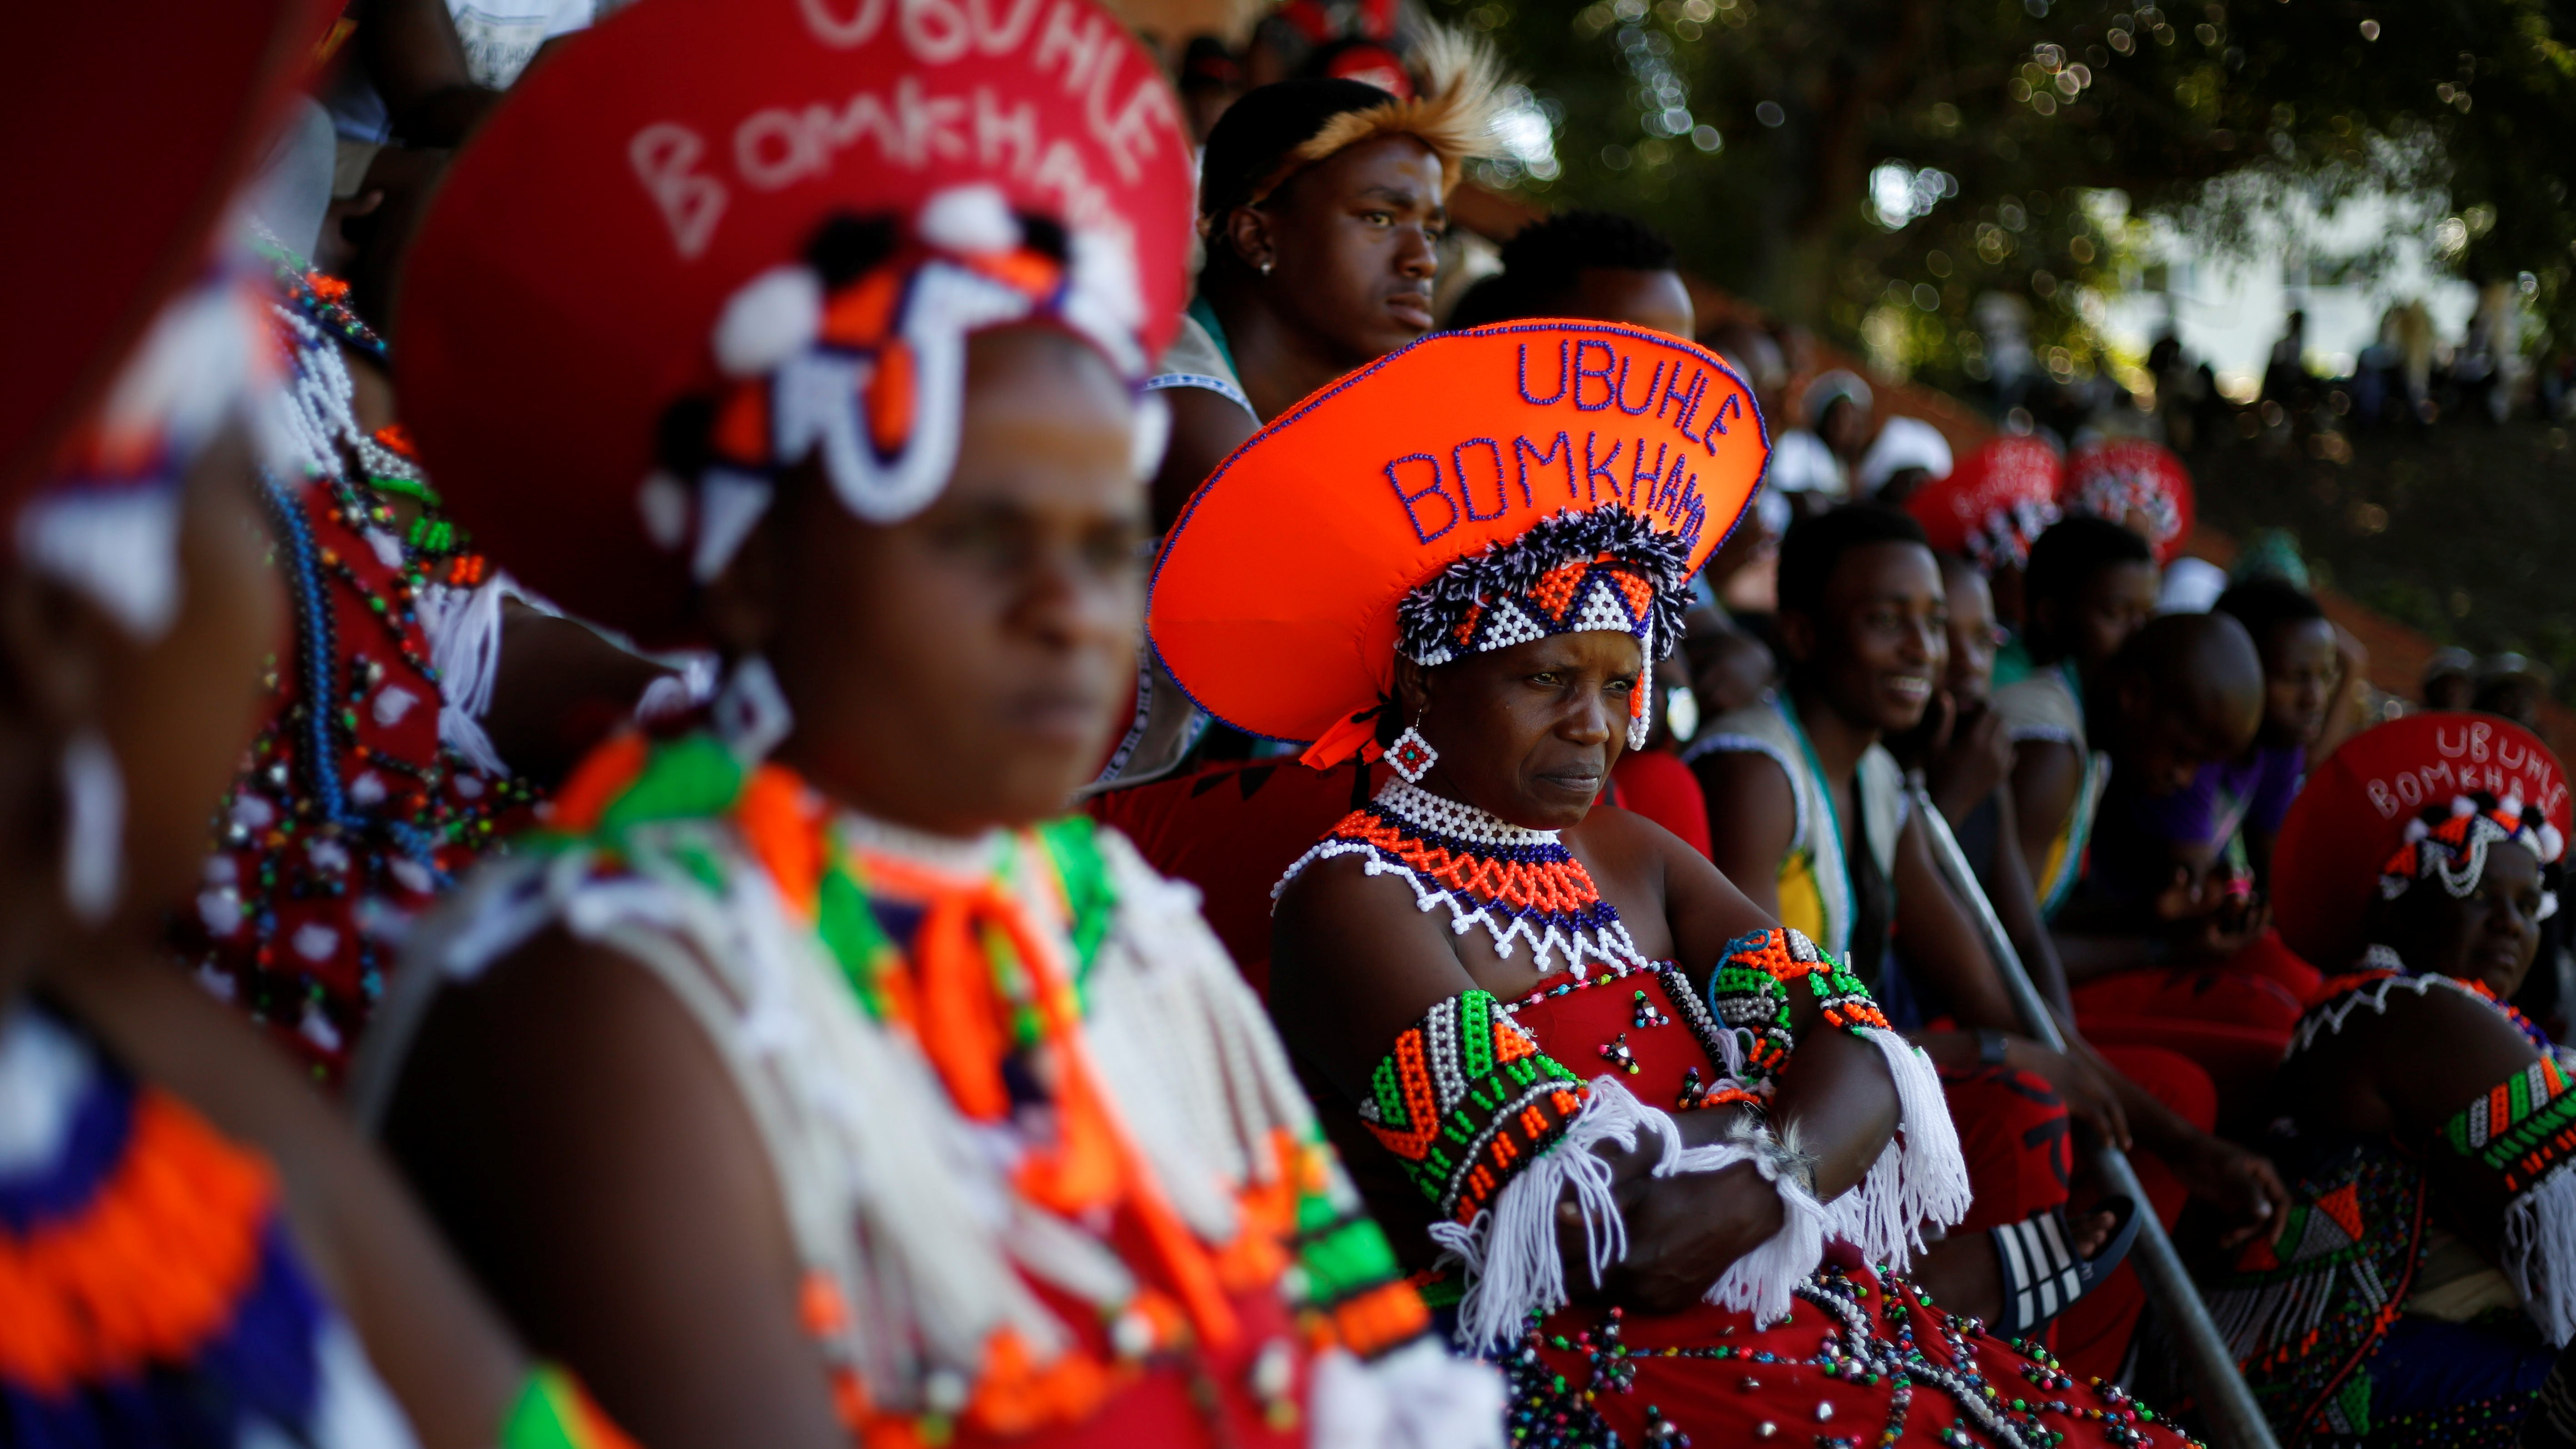 Contestants watch others perform during a Zulu dance competition in Durban.